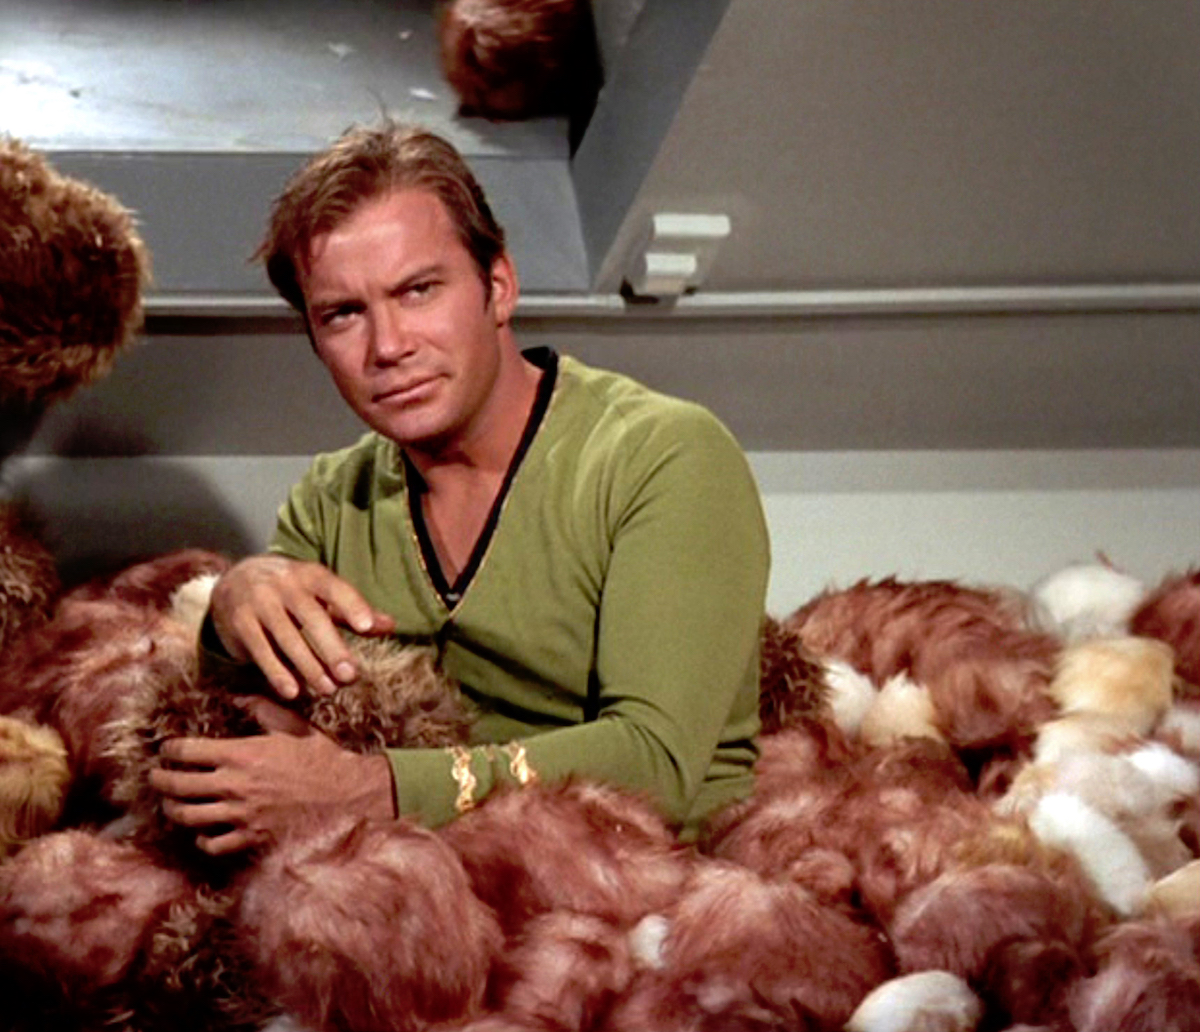 William Shatner as James Kirk in the 'Star Trek' episode 'The Trouble With Tribbles'